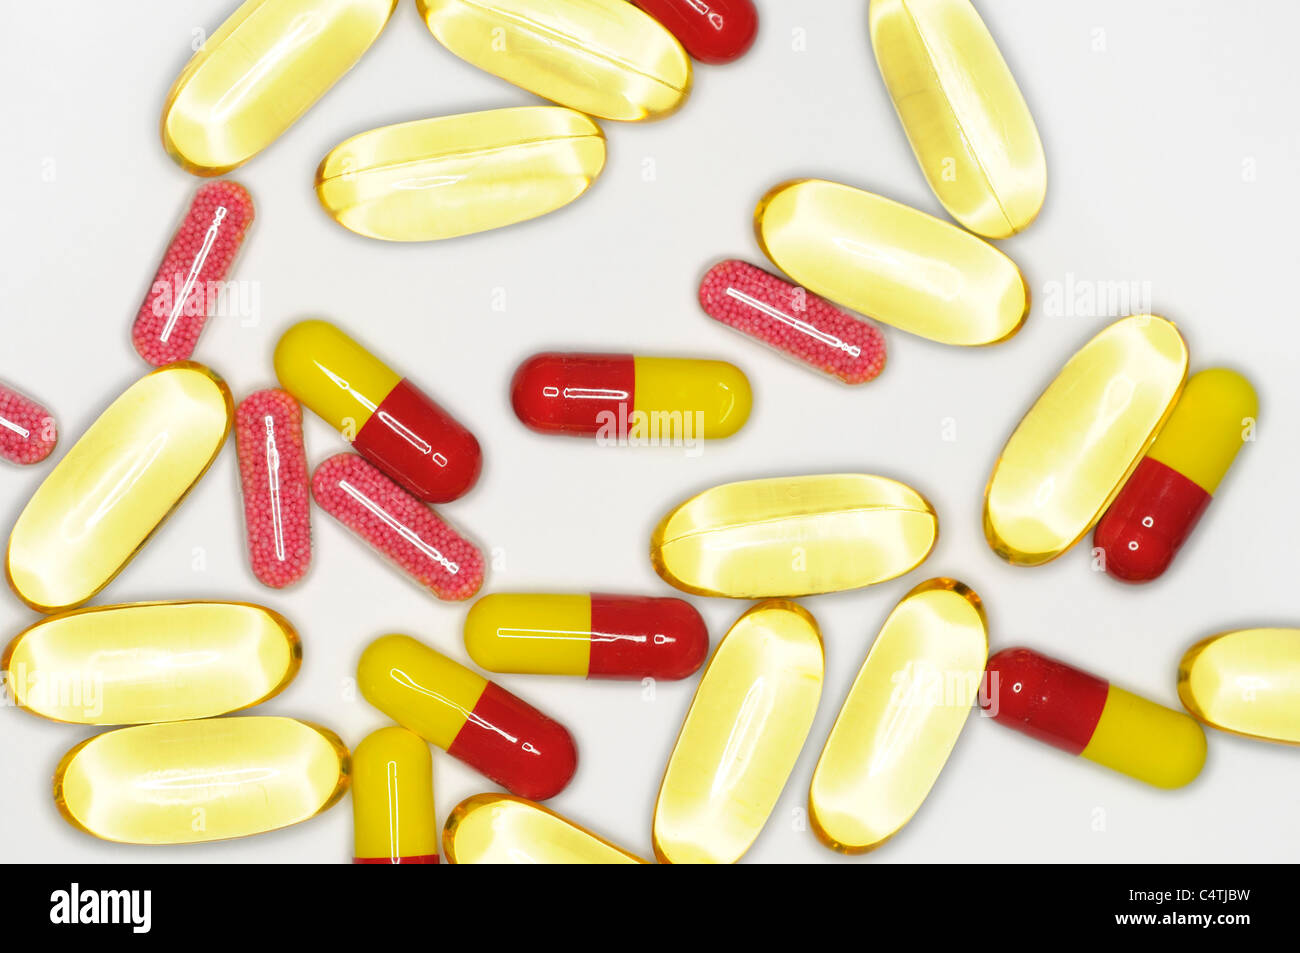 Variety of pills in capsule form - Stock Image